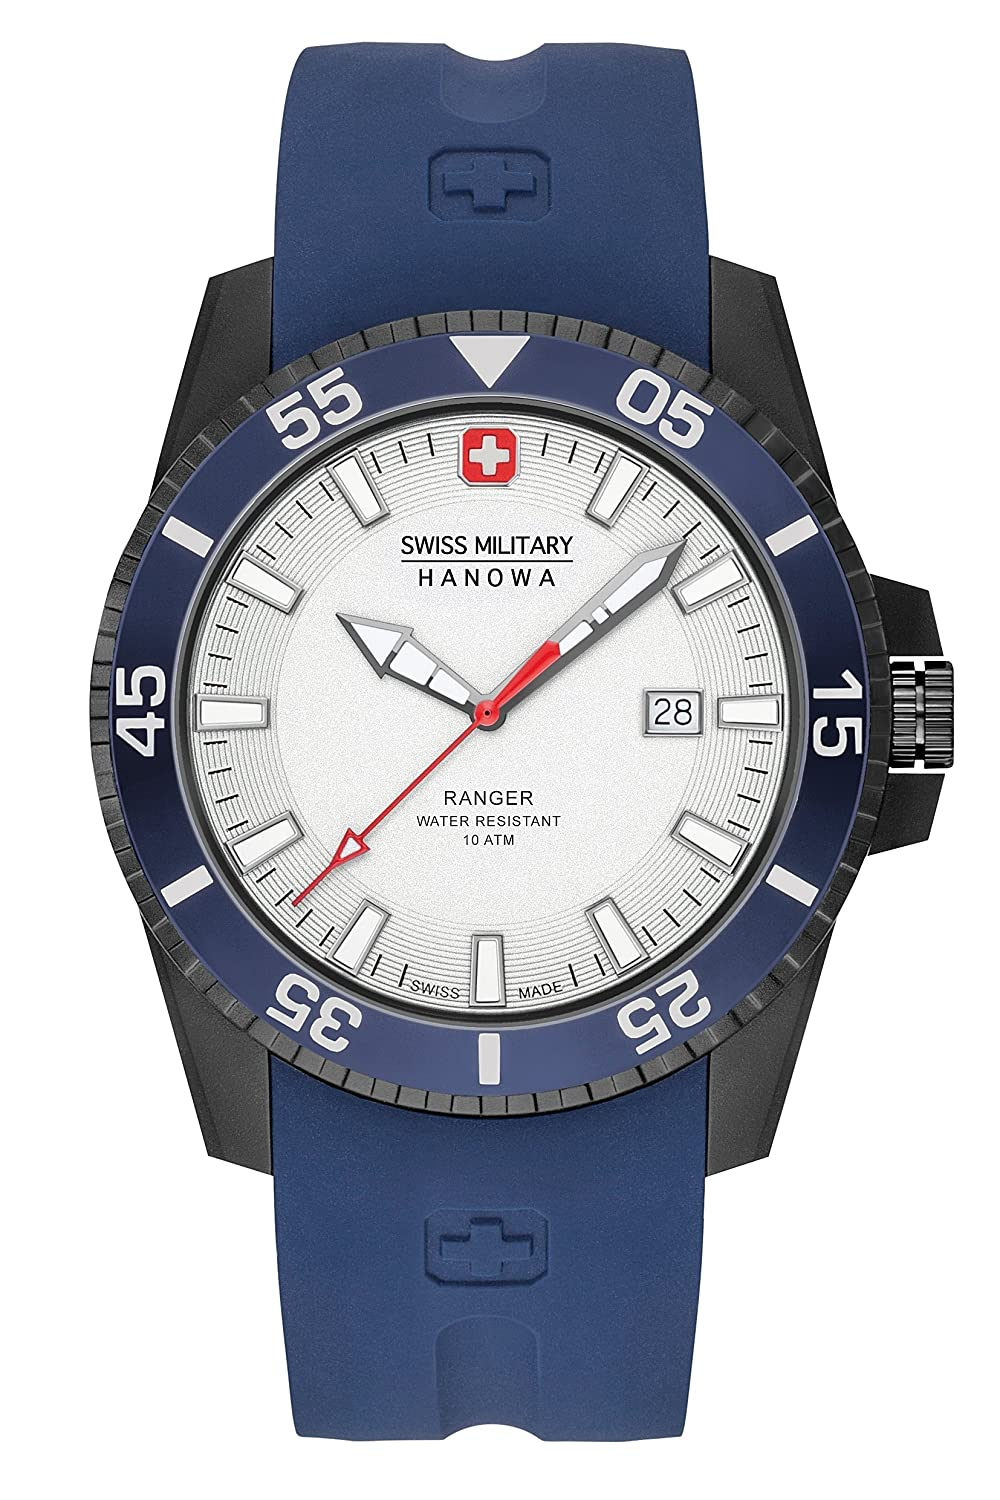 Amazon.com: Swiss Military 6-4253-27-001-03 Mens Ranger White Blue Watch: Watches